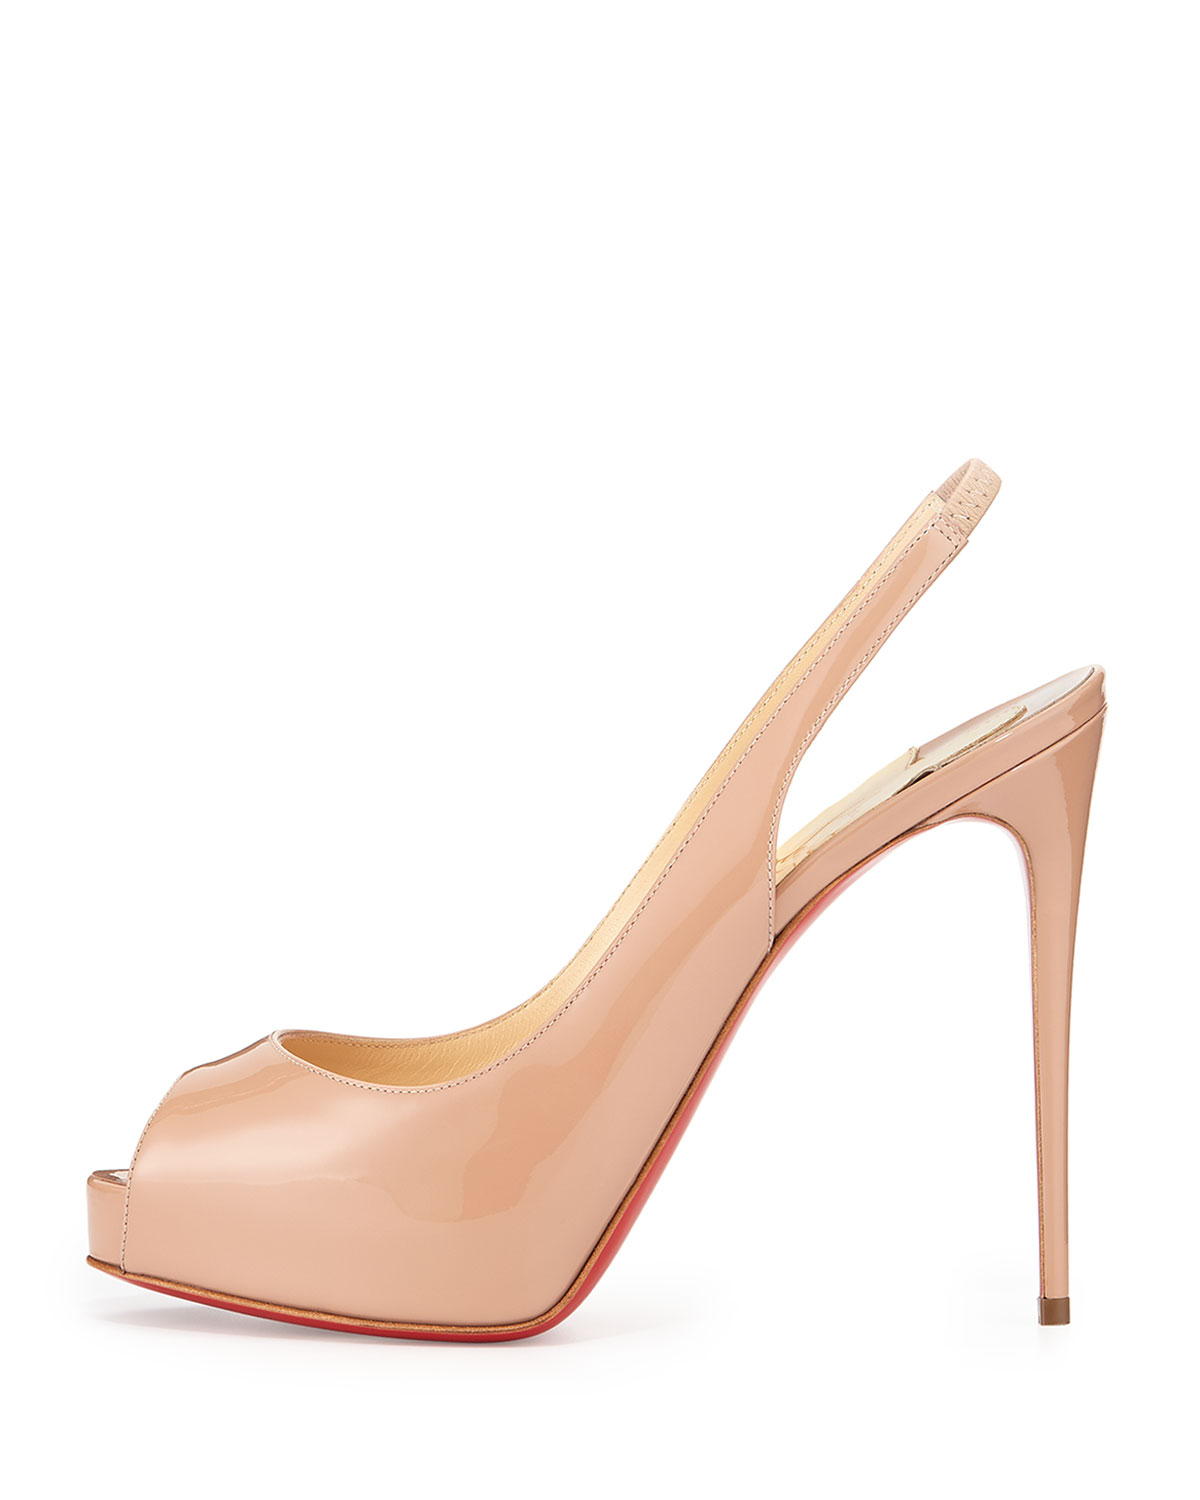 Christian louboutin Private Number Slingback in Beige (NEUTRAL) | Lyst